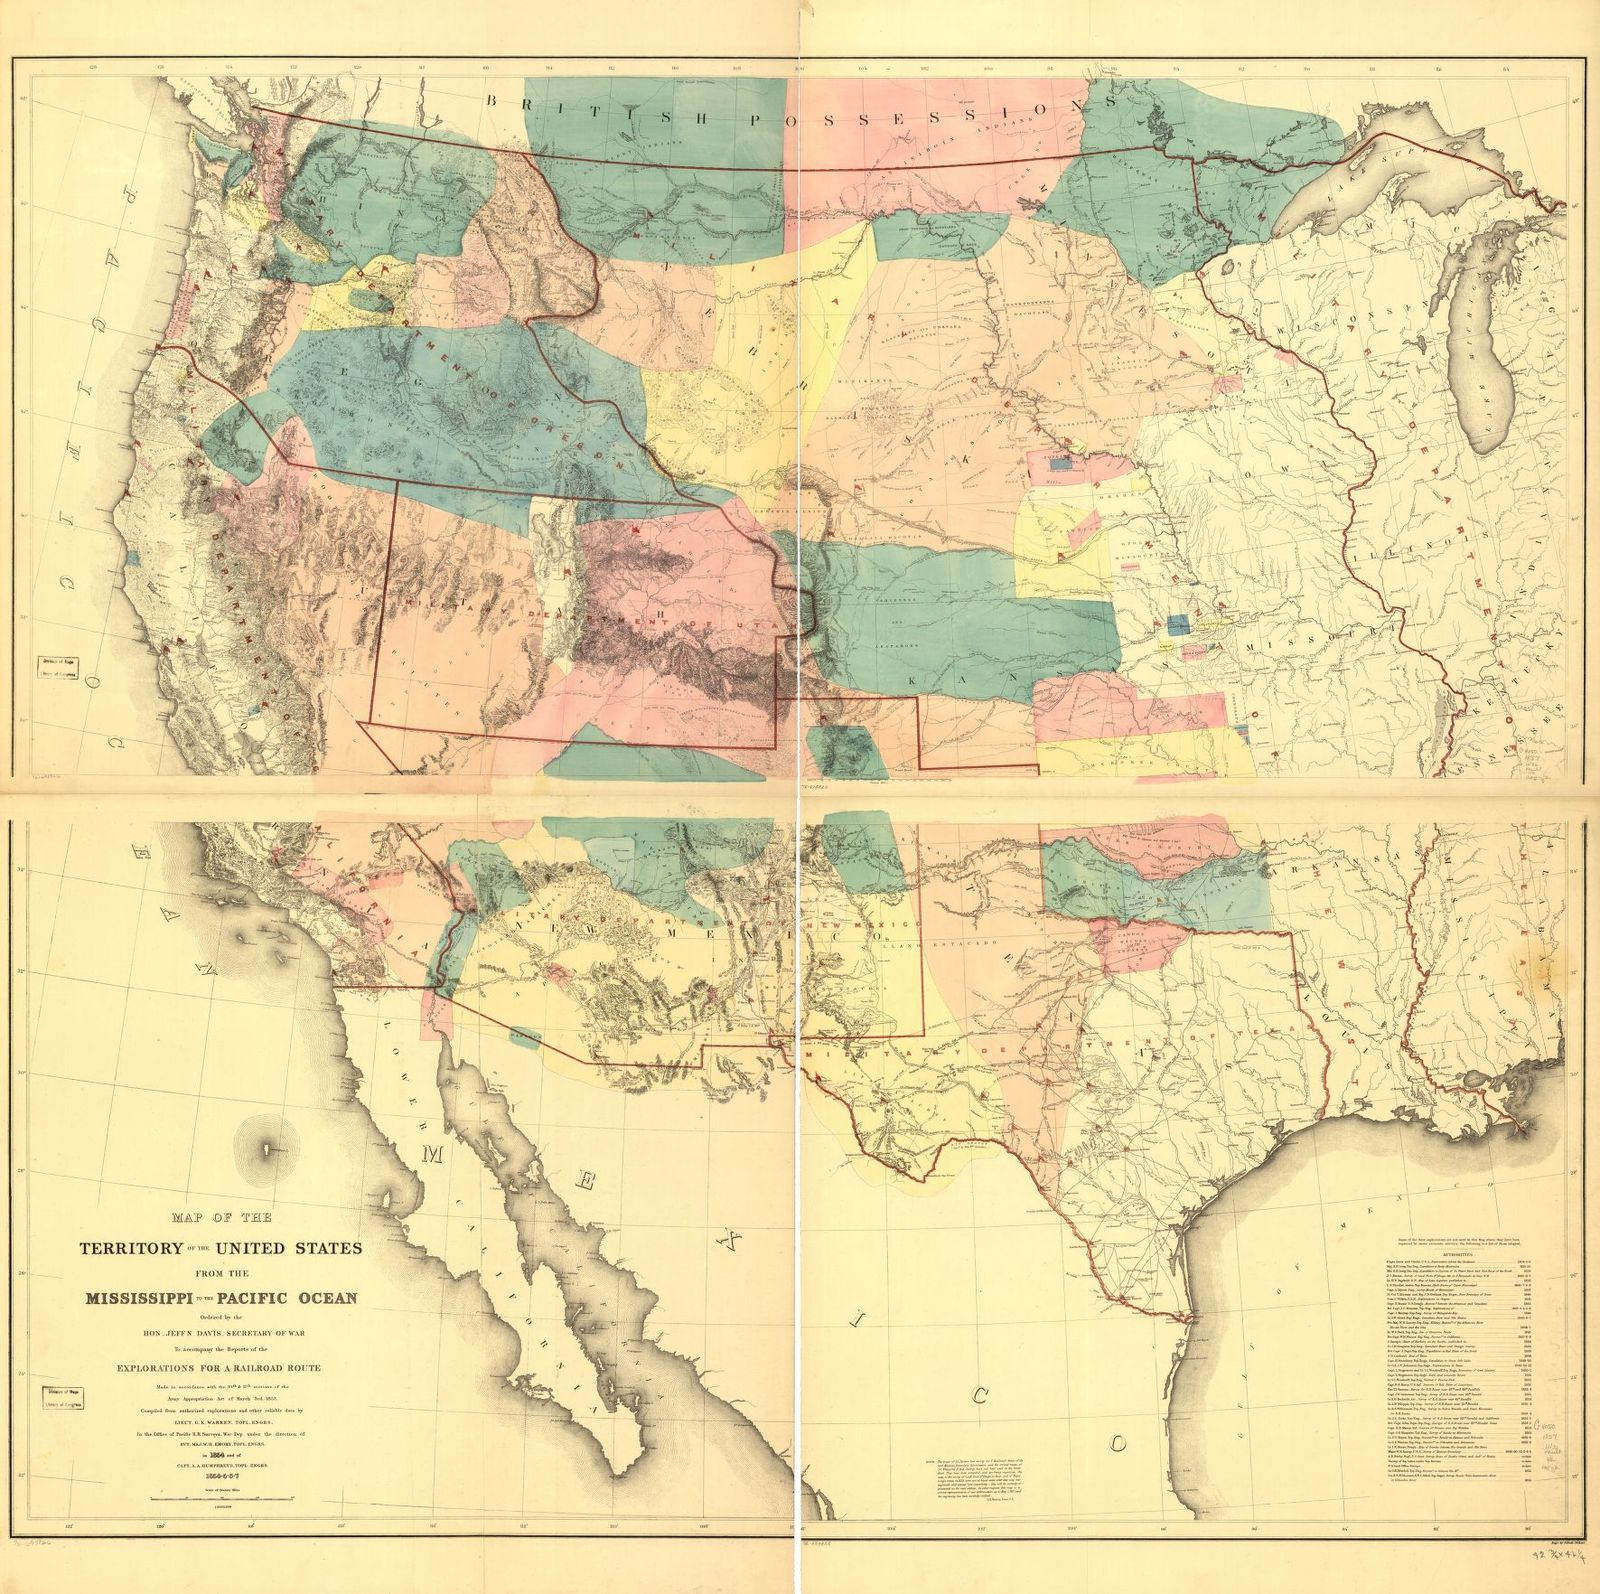 Map of the territory of the United States from the Mississippi to the Pacific Ocean; ordered by Jeff'n Davis, Secretary of War to accompany the reports of the explorations for a railroad route.